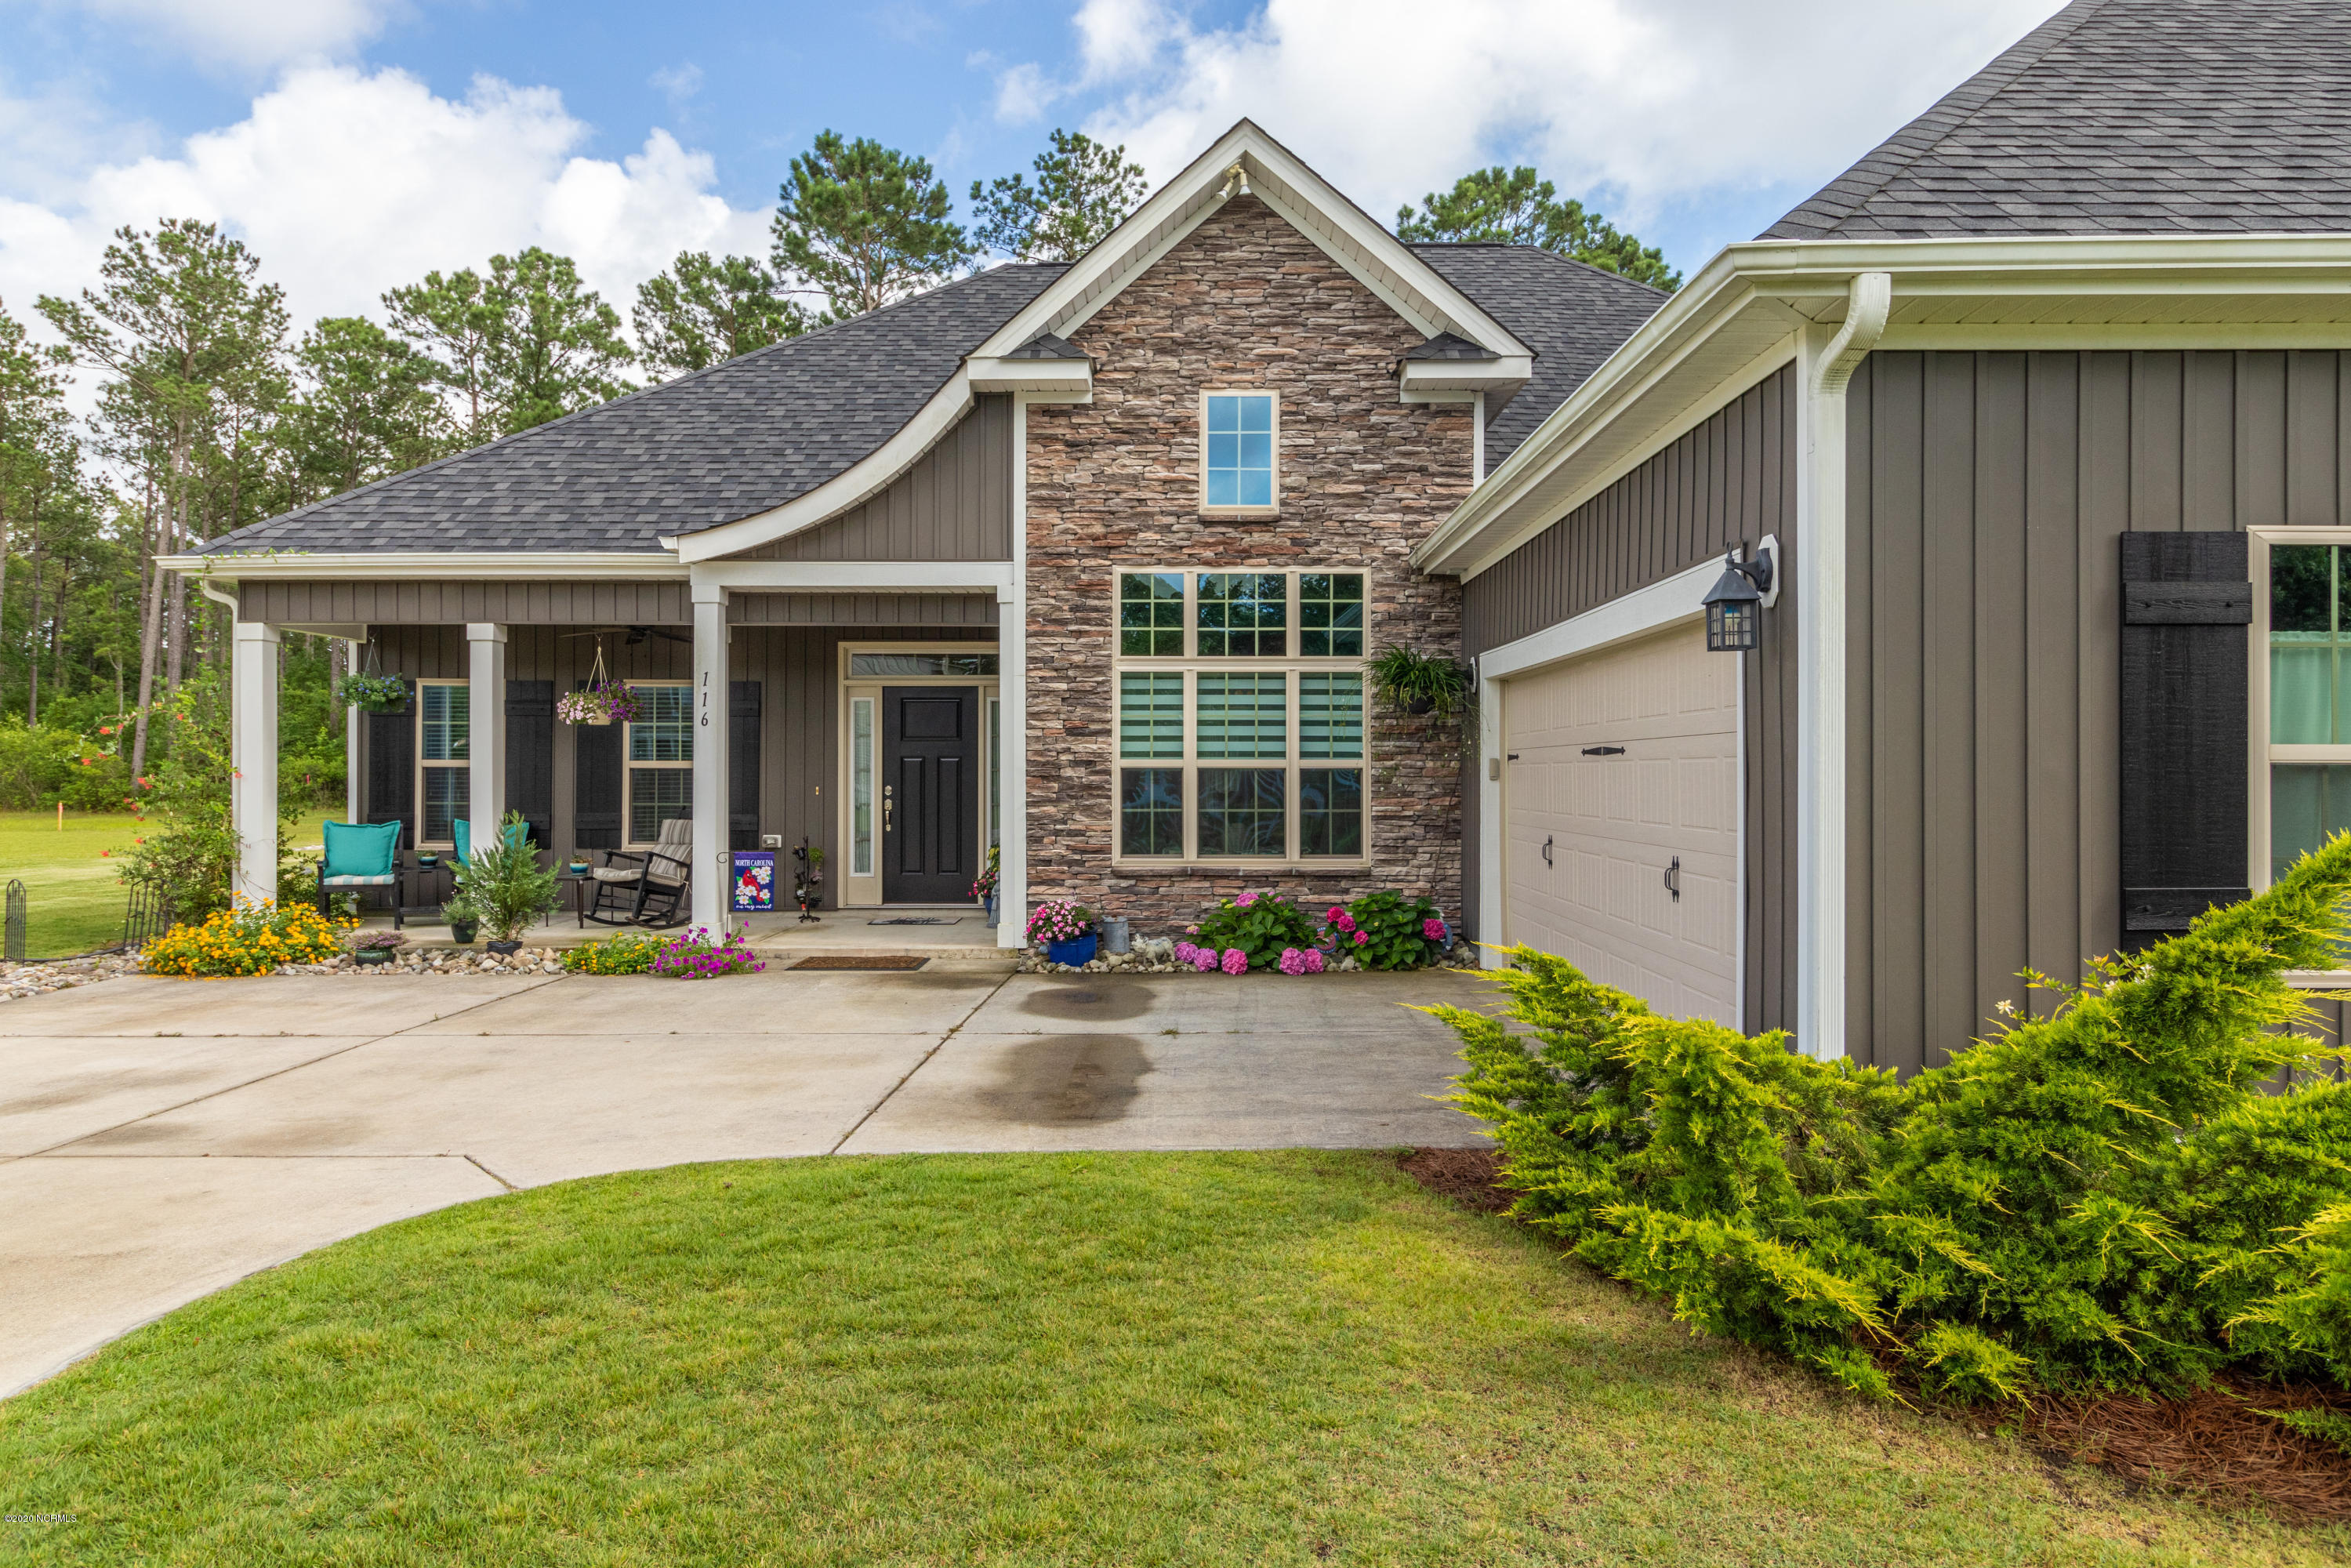 116 Forest Ridge Trail, Stella, North Carolina 28582, 3 Bedrooms Bedrooms, ,3 BathroomsBathrooms,Residential,For Sale,Forest Ridge,100222568